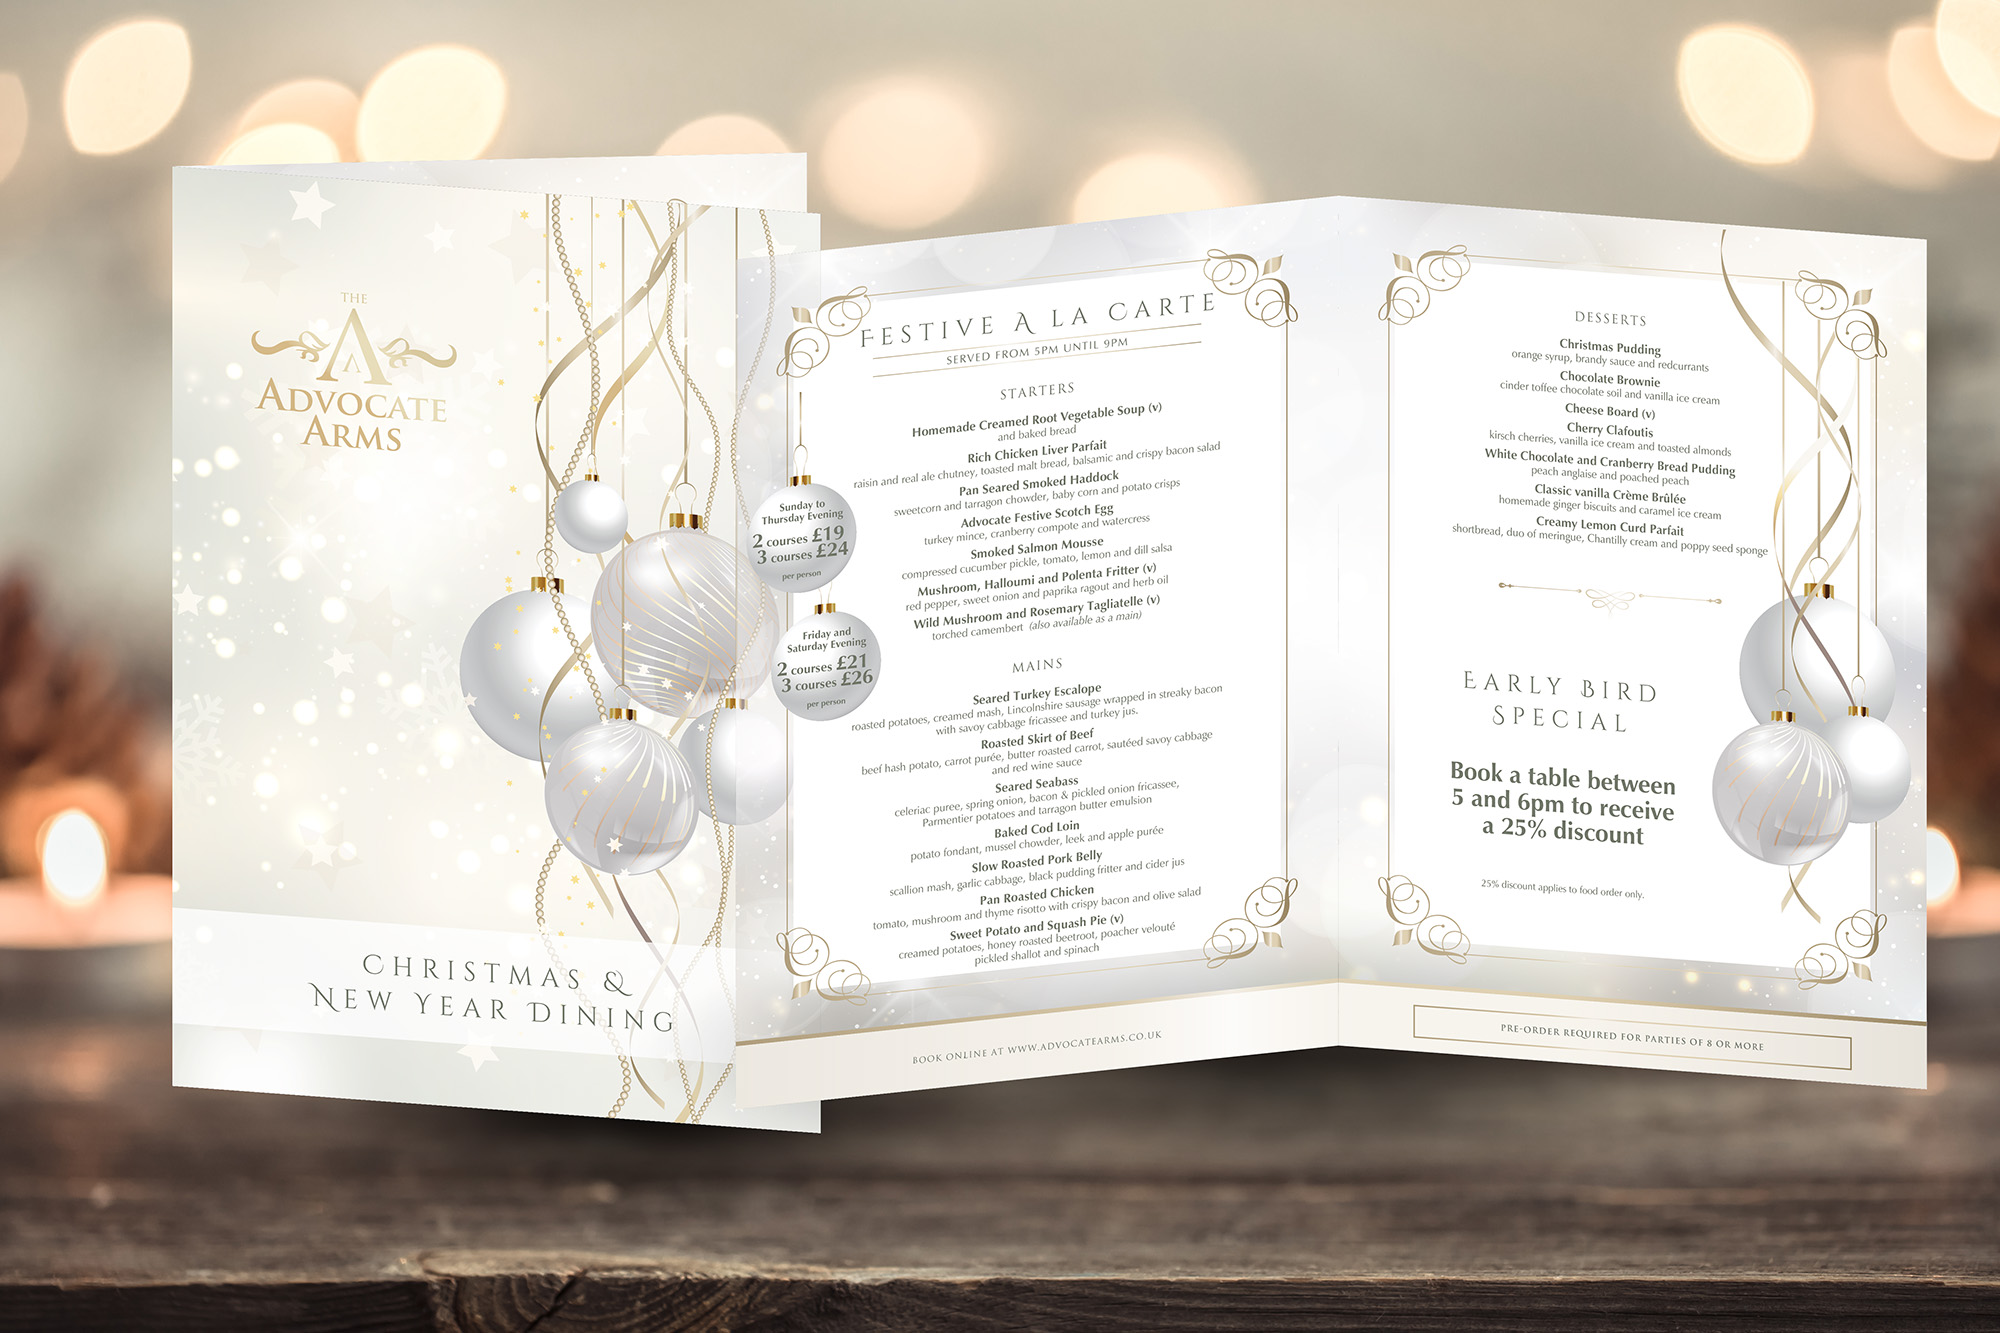 The Advocate Arms Christmas Brochure